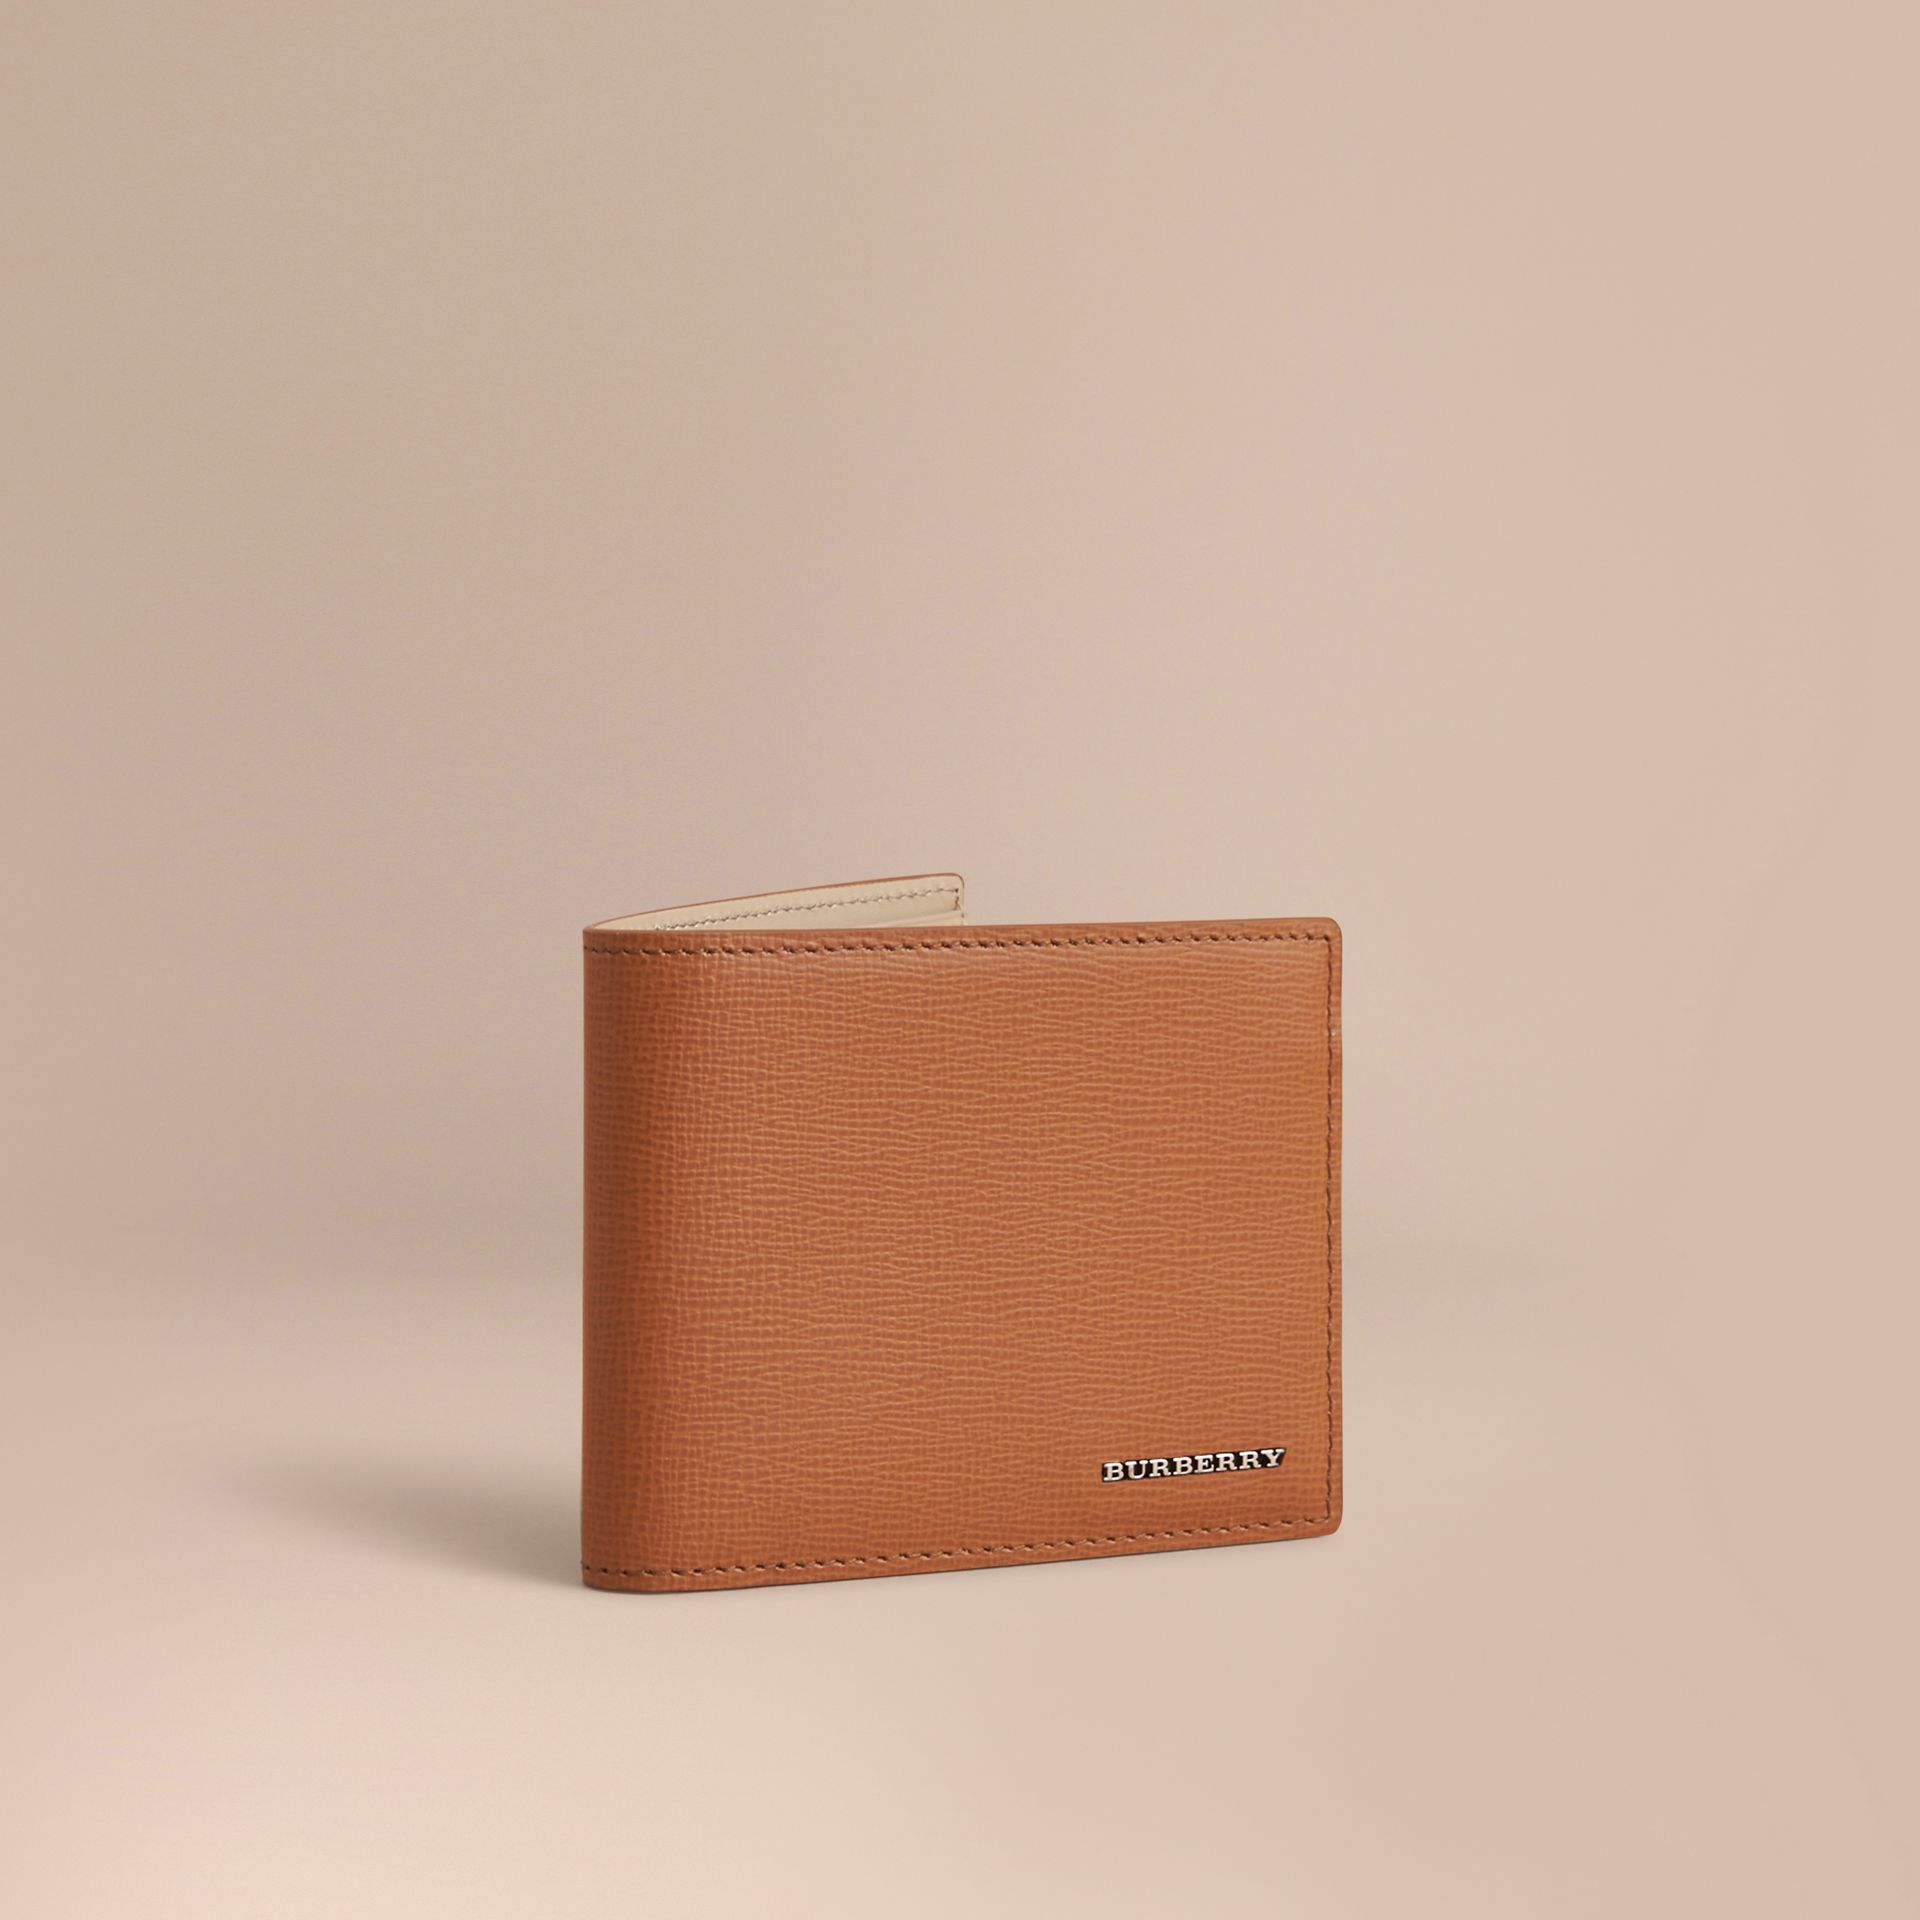 London Leather Bifold Wallet in Tan | Burberry - gallery image 1